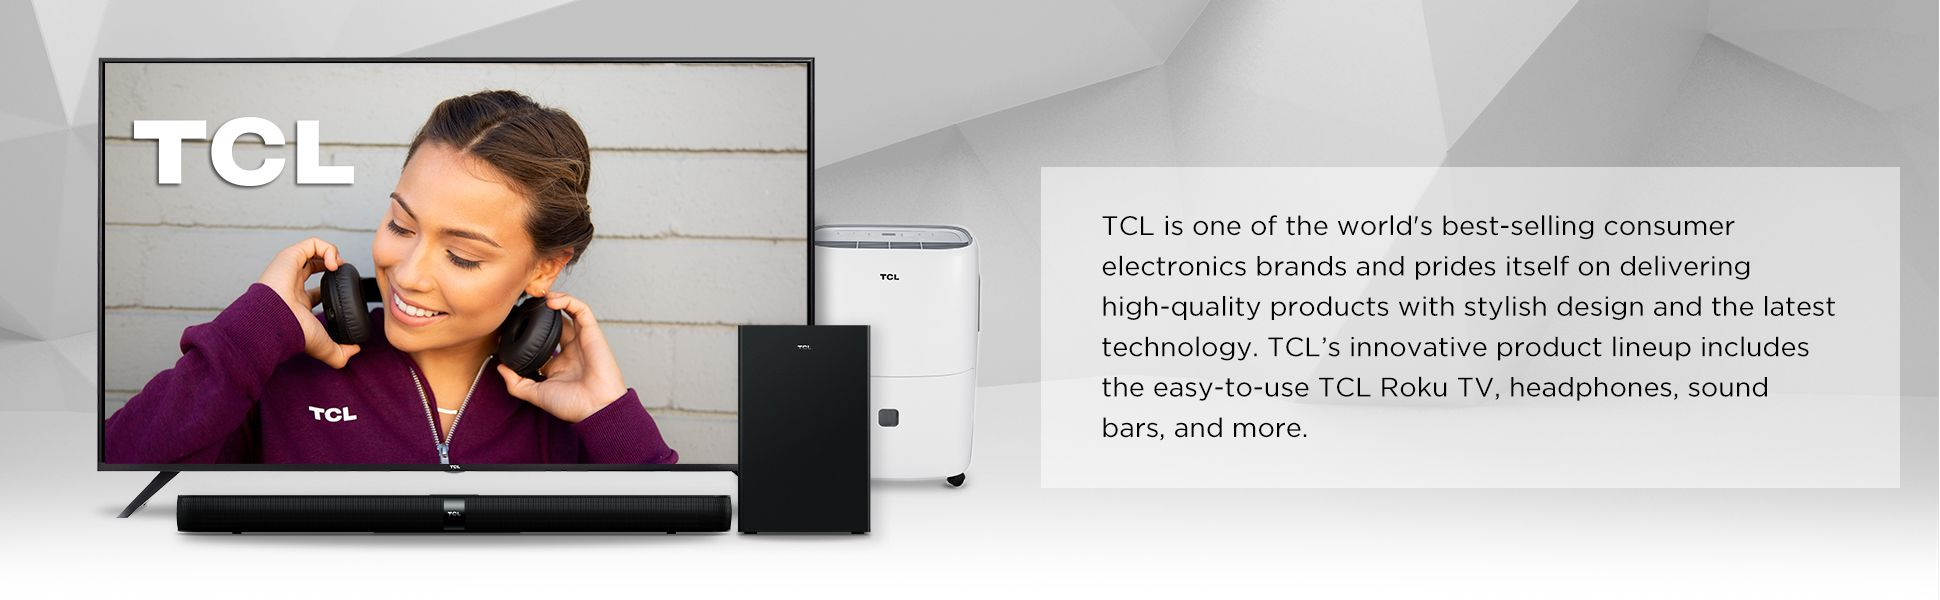 TCL Alto 7+ 2 1 Channel Home Theater Sound Bar with Wireless Subwoofer -  TS7010